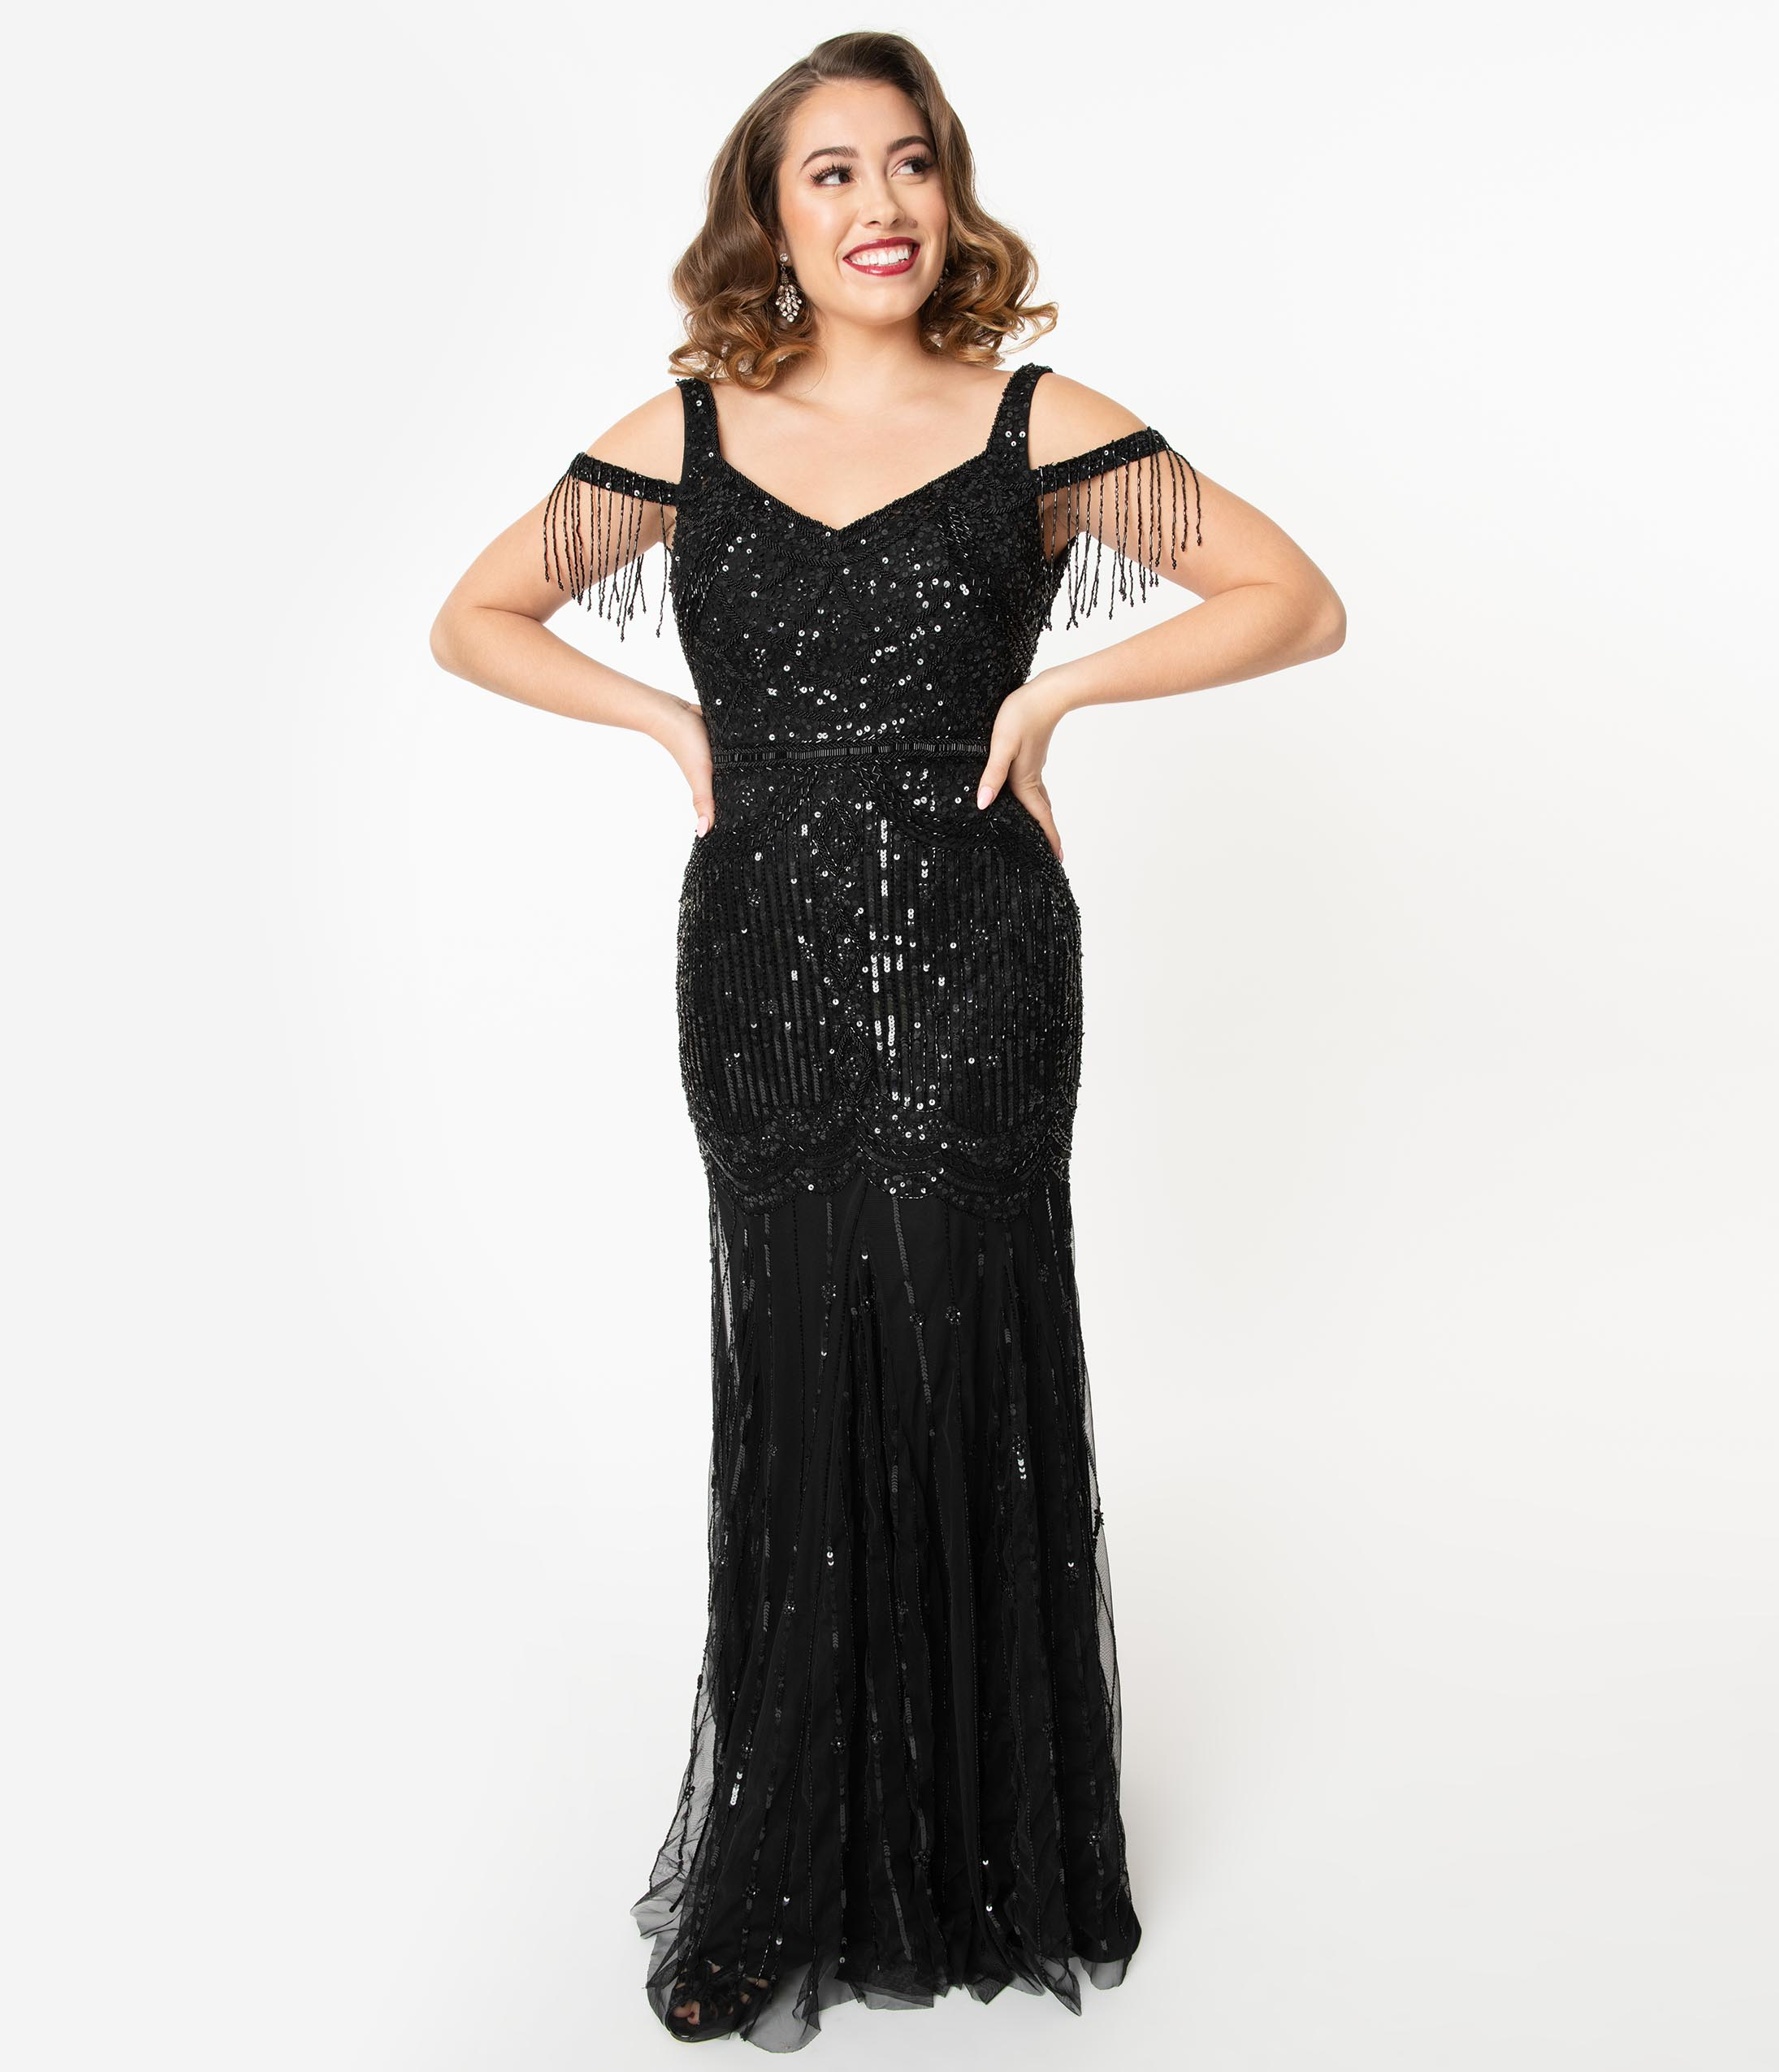 1920s Downton Abbey Dresses Deco Style Black Beaded Mermaid Chloe Flapper Dress Gown $238.00 AT vintagedancer.com